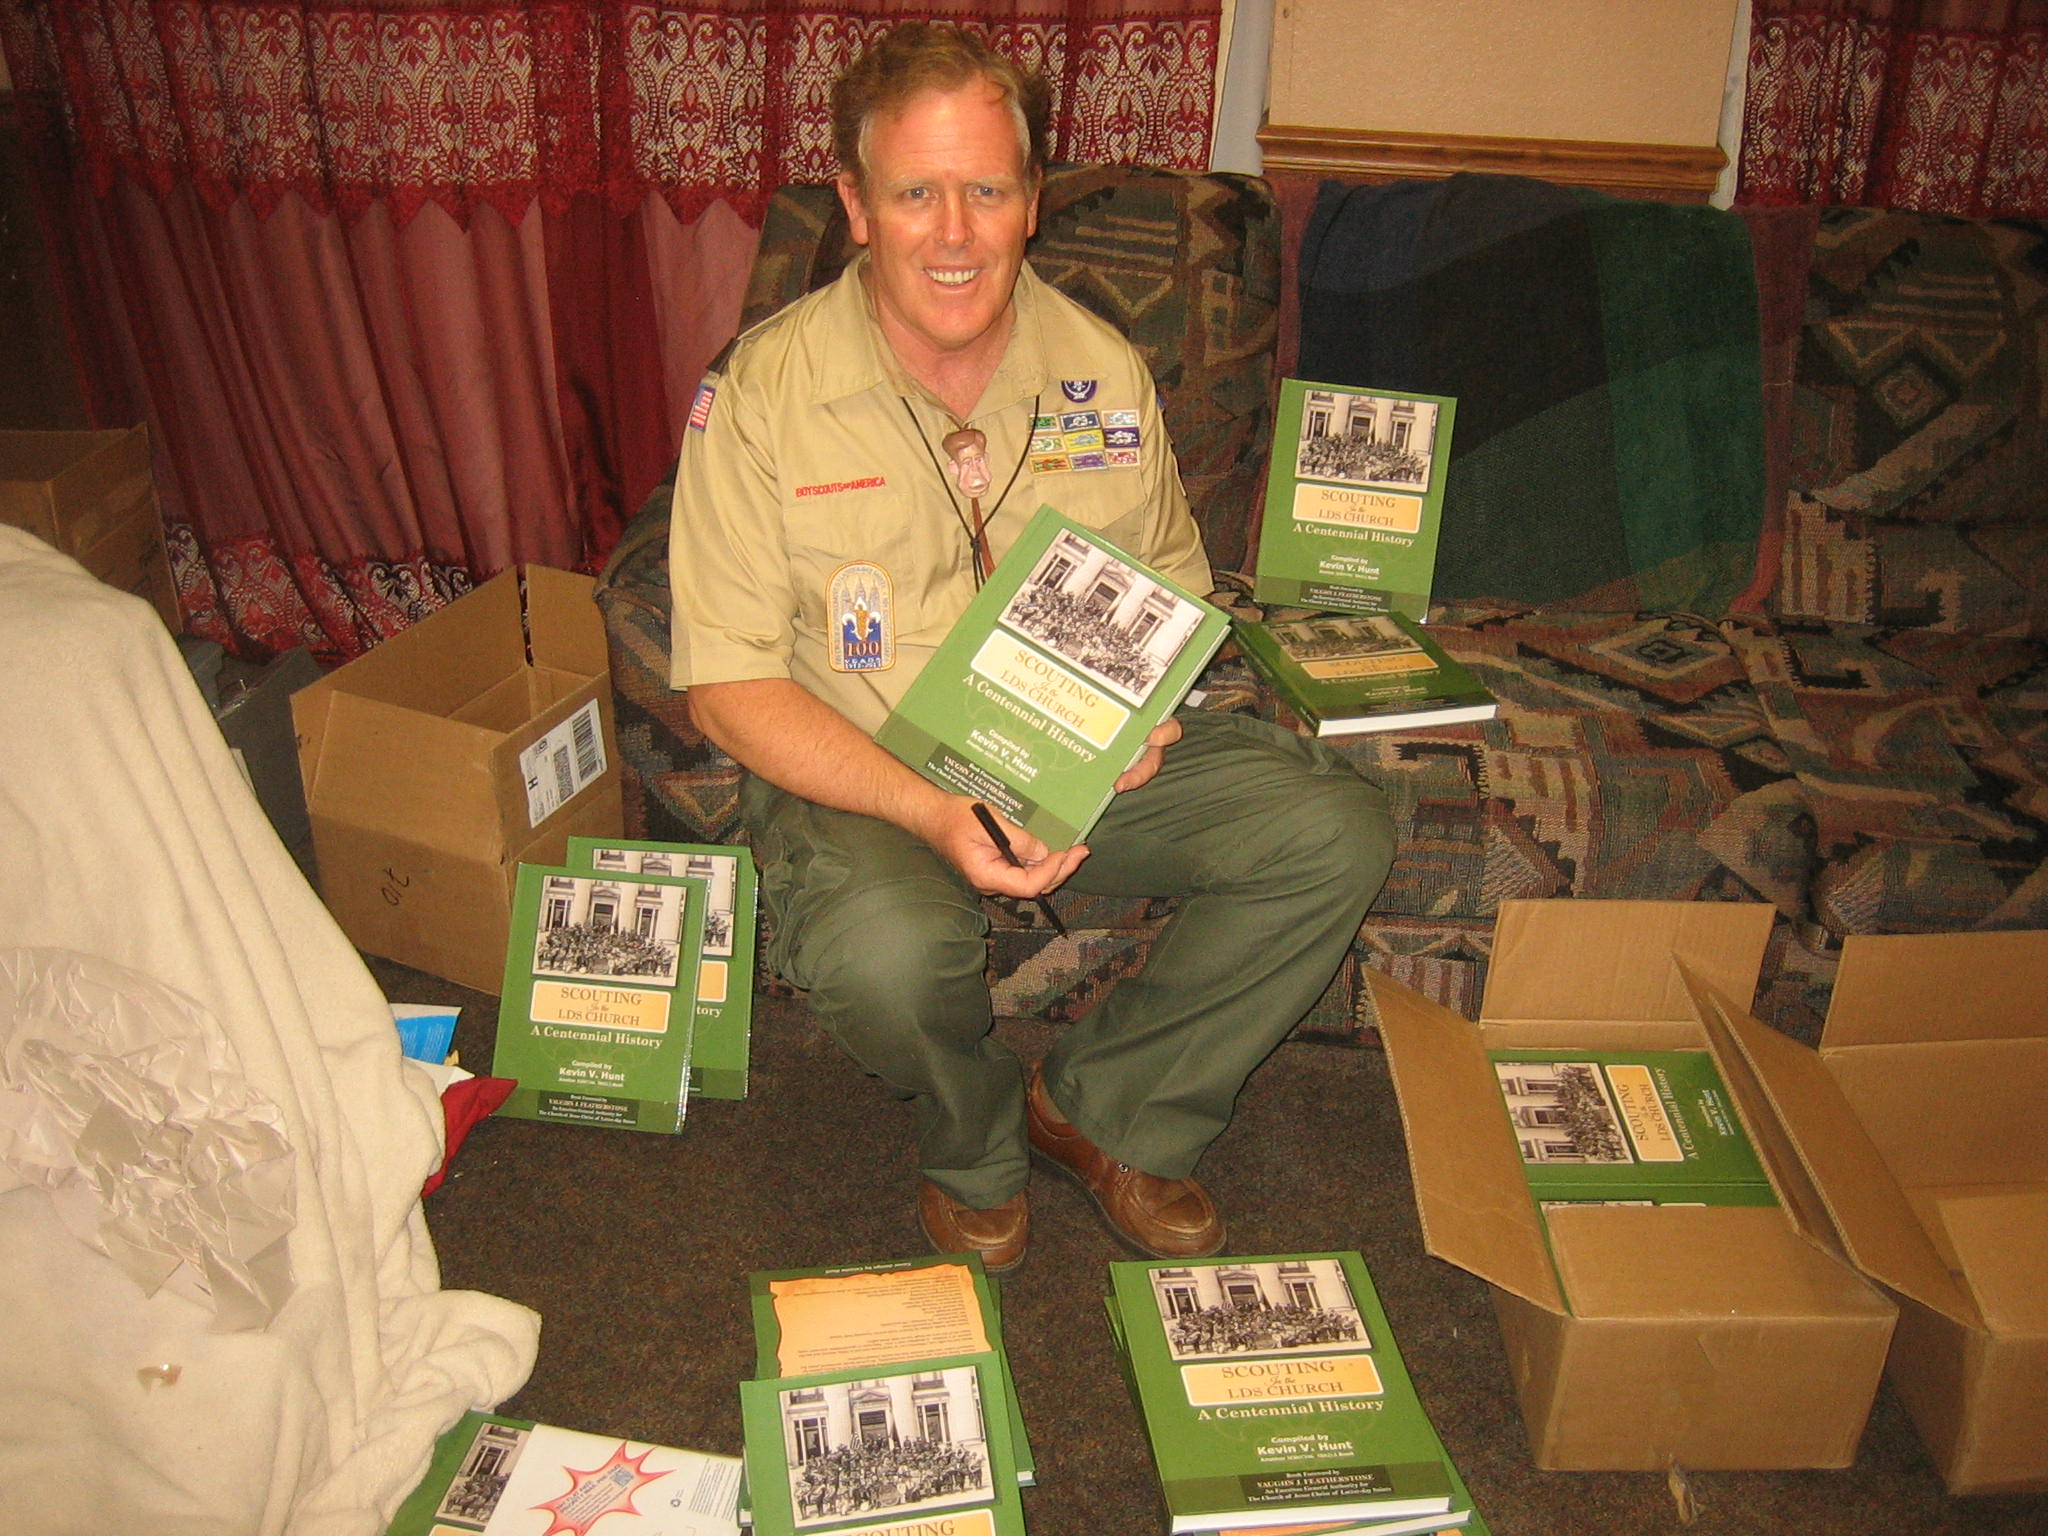 Mesa Scouter, Kevin Hunt, Was Part Of A 10-writer Team That Collaborated On Century Of Honor That Chronicles The History Of Scouting In The Church. He Also Revised A Book Of His Own, Called Scouting In The LDS Church: A Centennial History, That He Says Complements The Other Book. Photo Courtesy Kevin Hunt